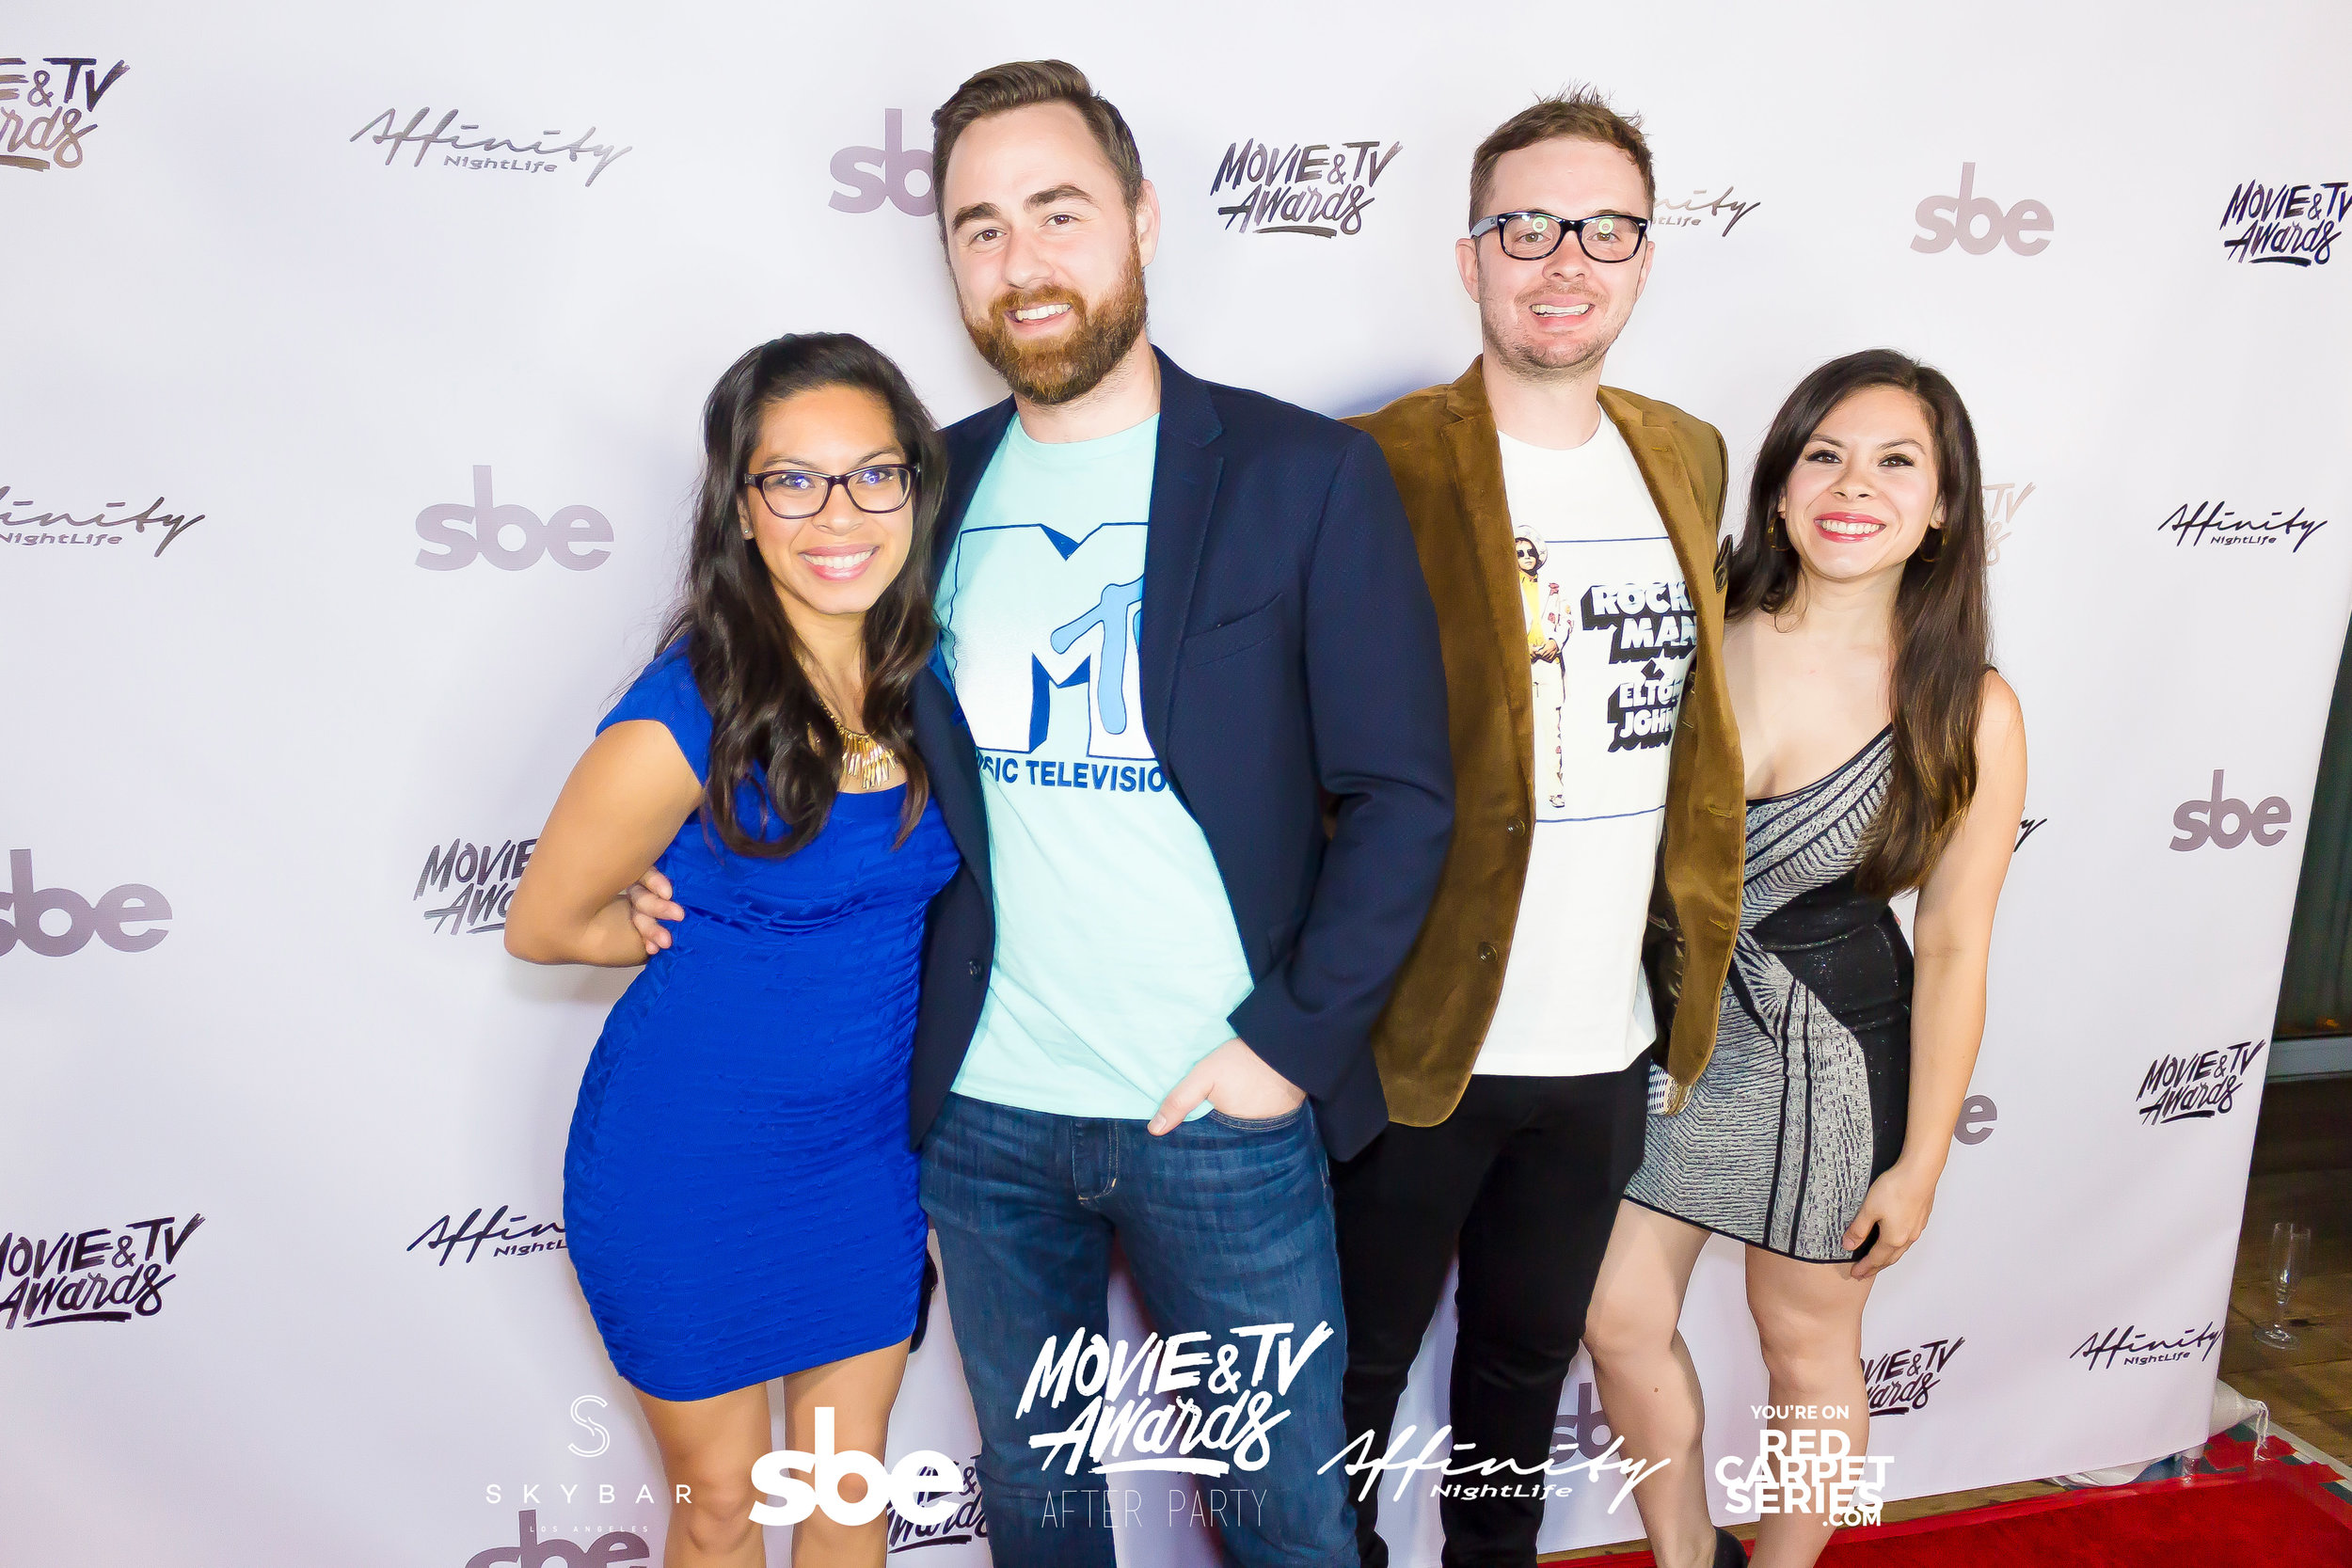 Affinity Nightlife MTV Movie & TV Awards After Party - Skybar at Mondrian - 06-15-19 - Vol. 2_110.jpg